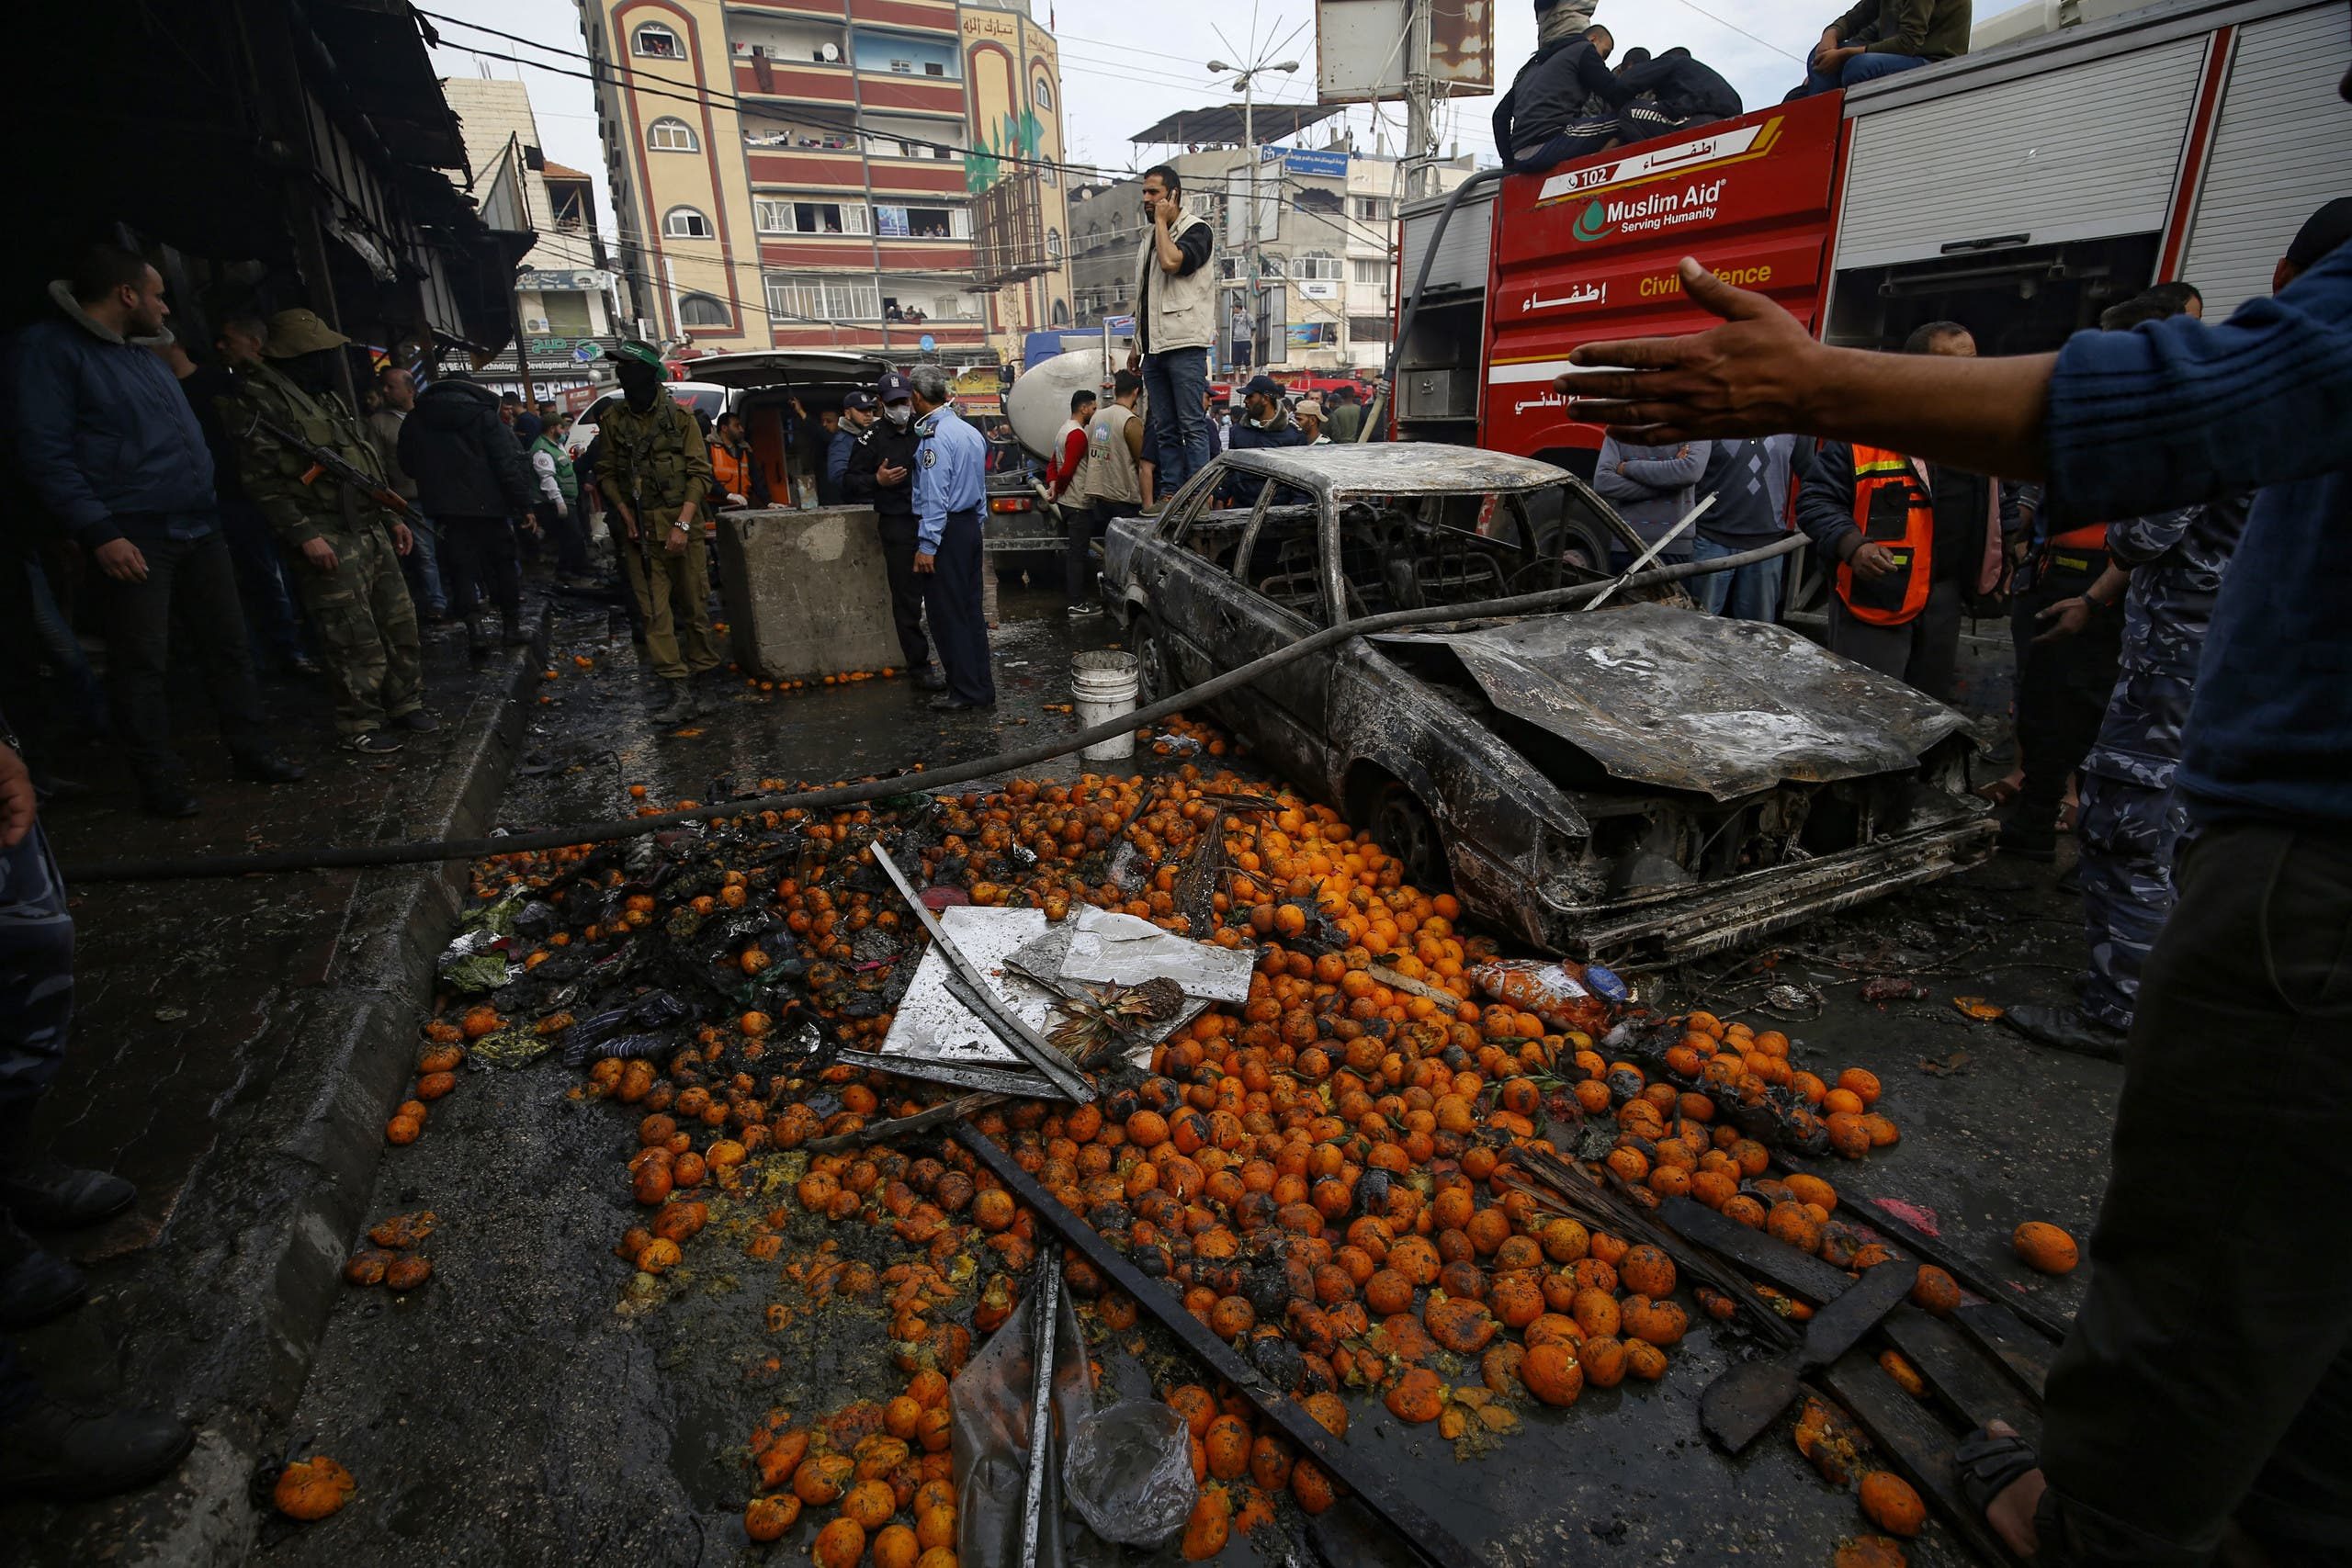 Fruit is scattered across the street near a charred car after a fire that broke out in a market in the refugee camp of Nuseirat in central Gaza Strip, on March 5, 2020. (AFP)